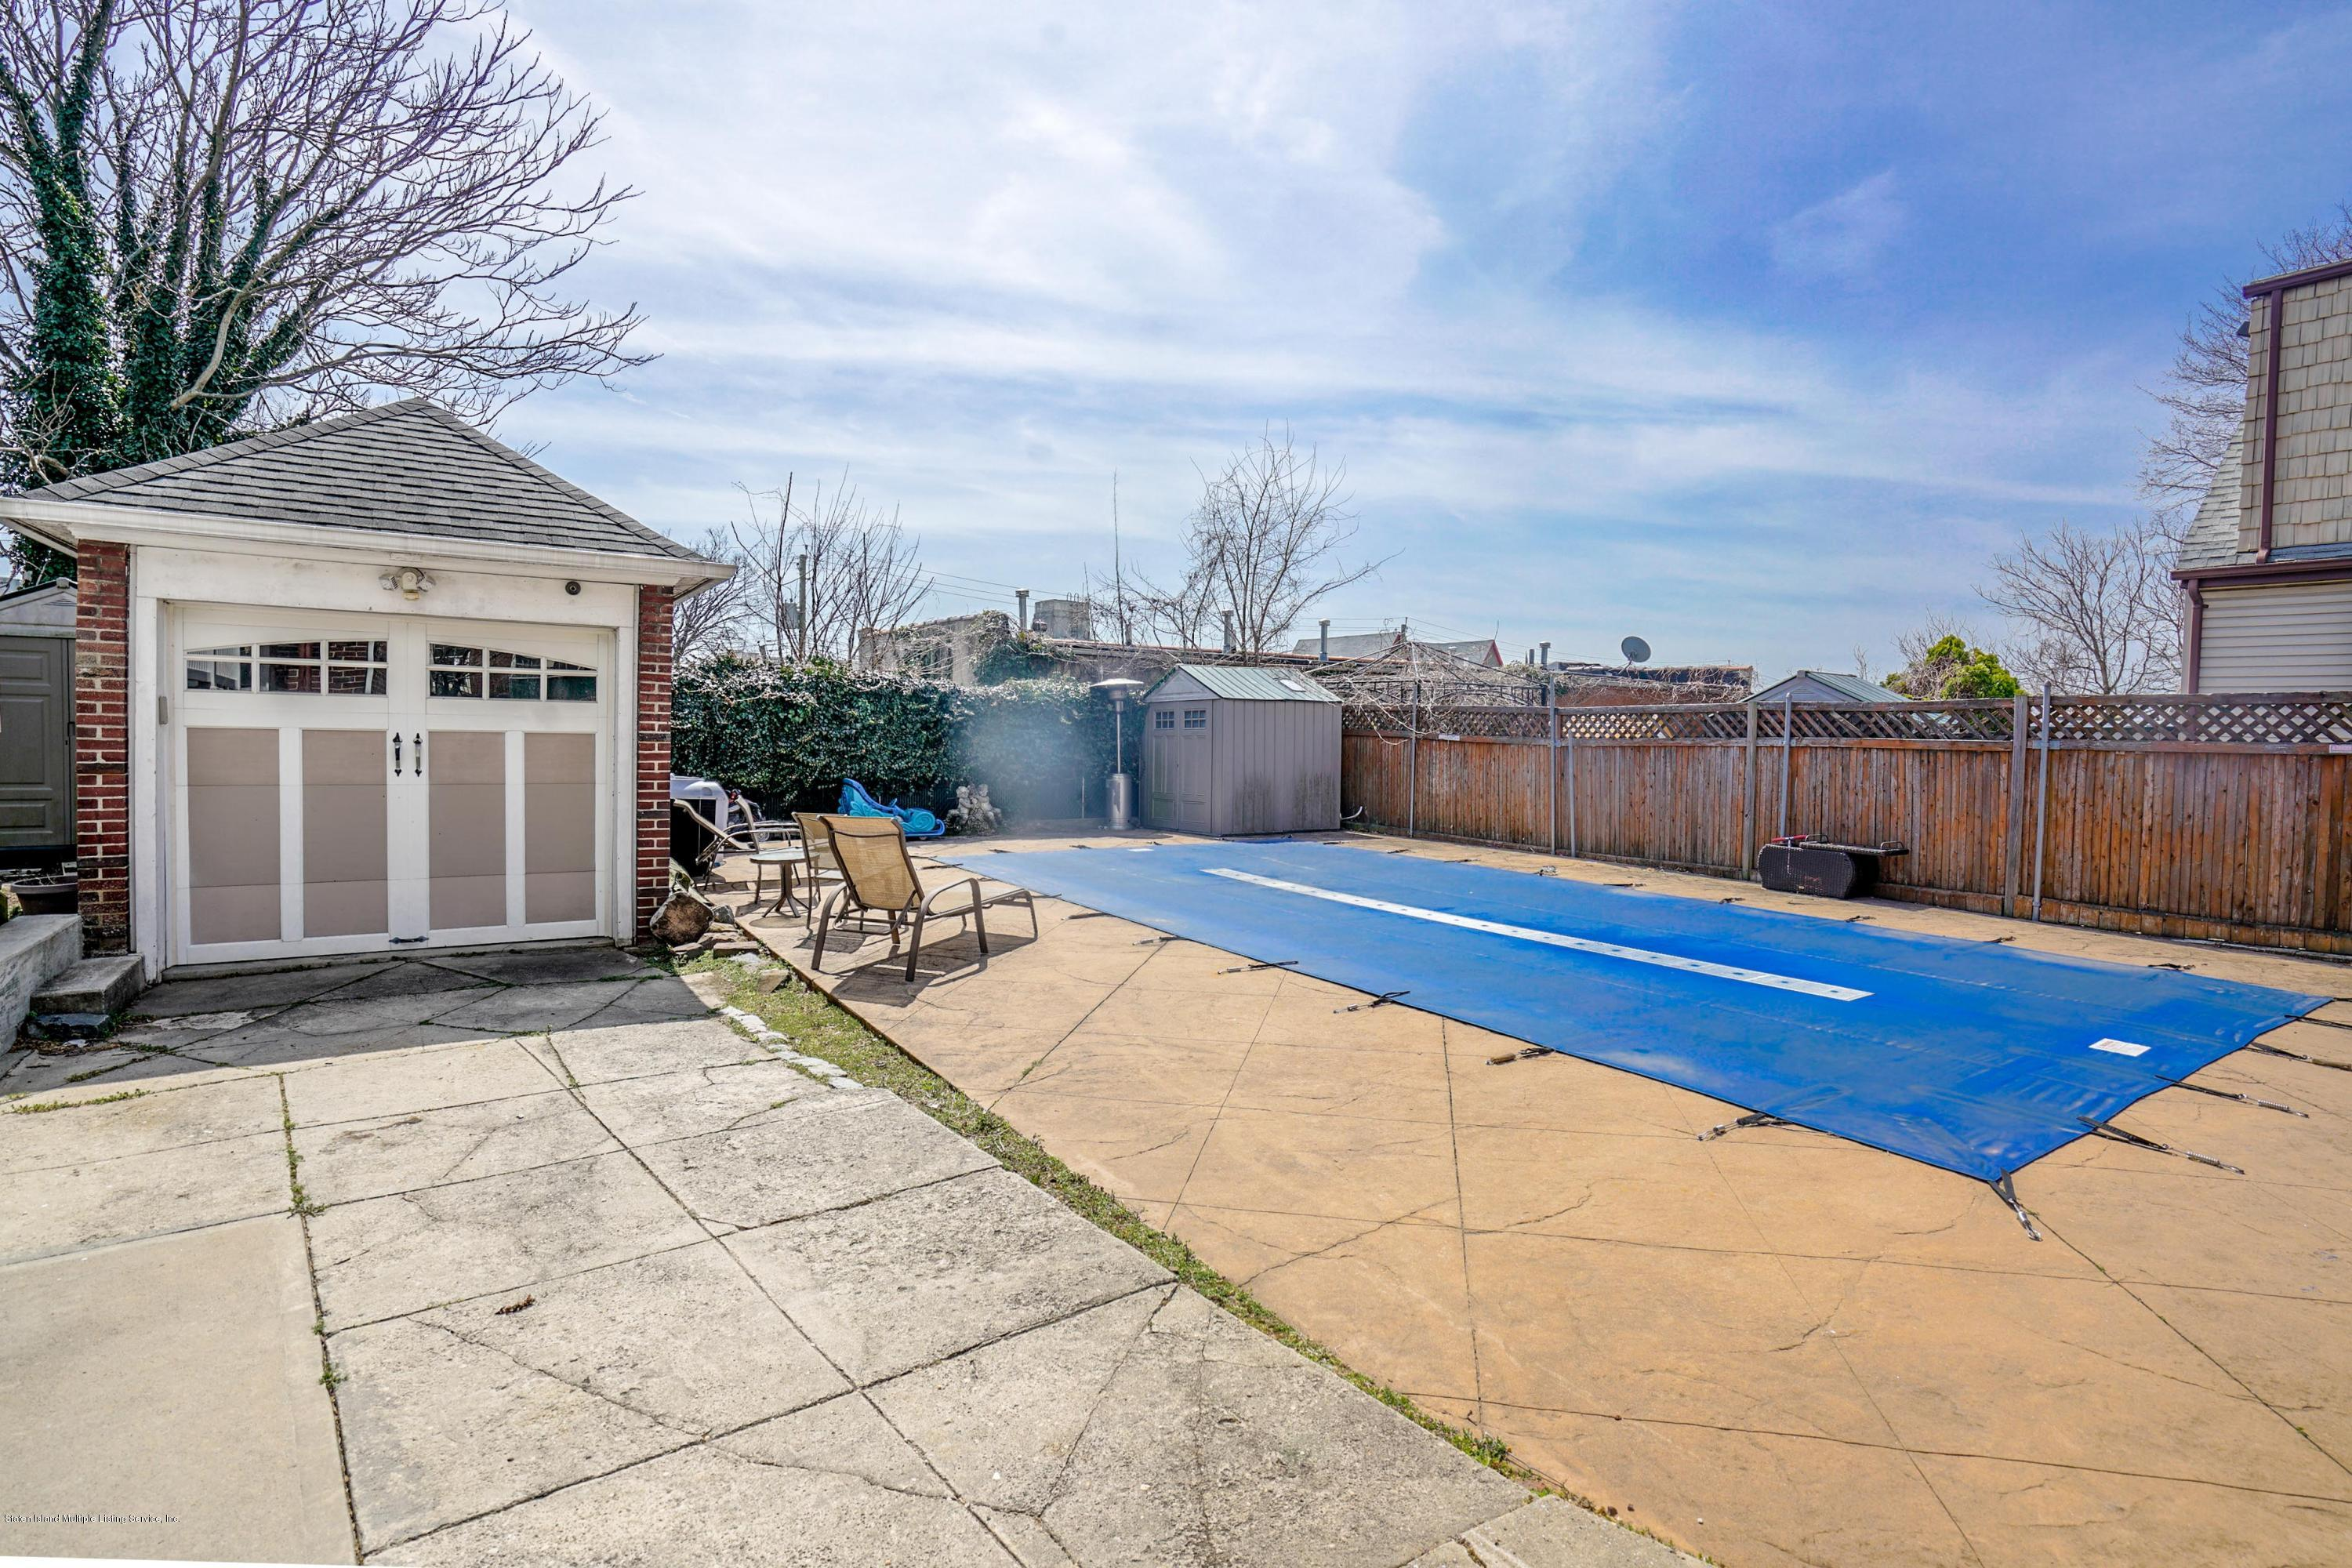 Two Family - Detached 88 Macfarland Avenue  Staten Island, NY 10305, MLS-1128024-23